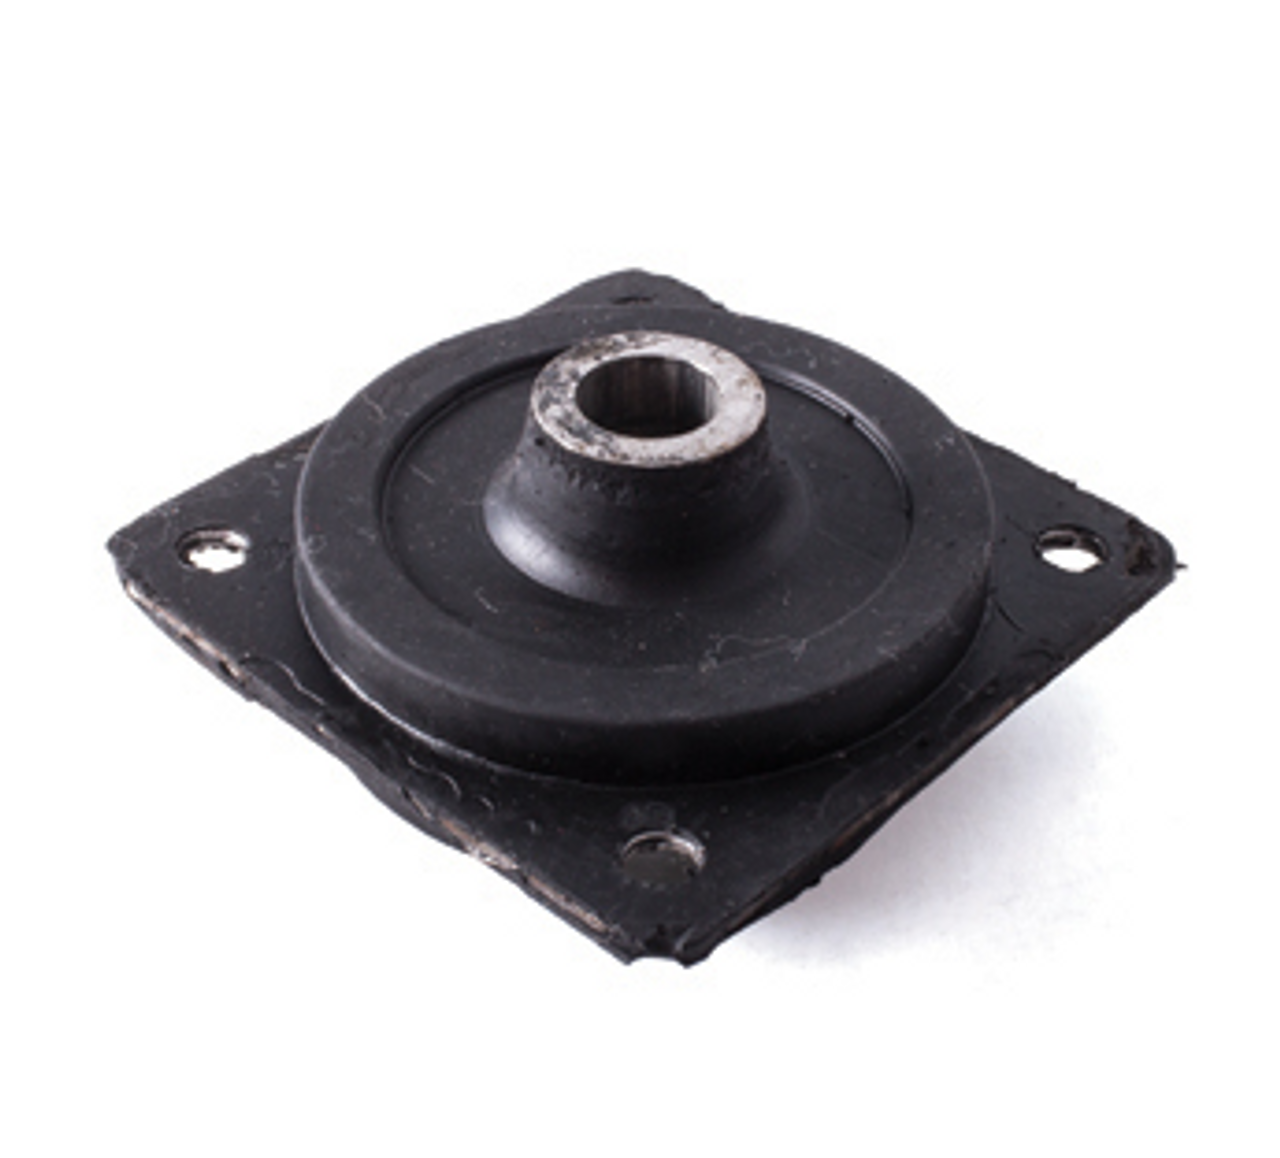 Ezgo Marathon Motor Mount For 1976